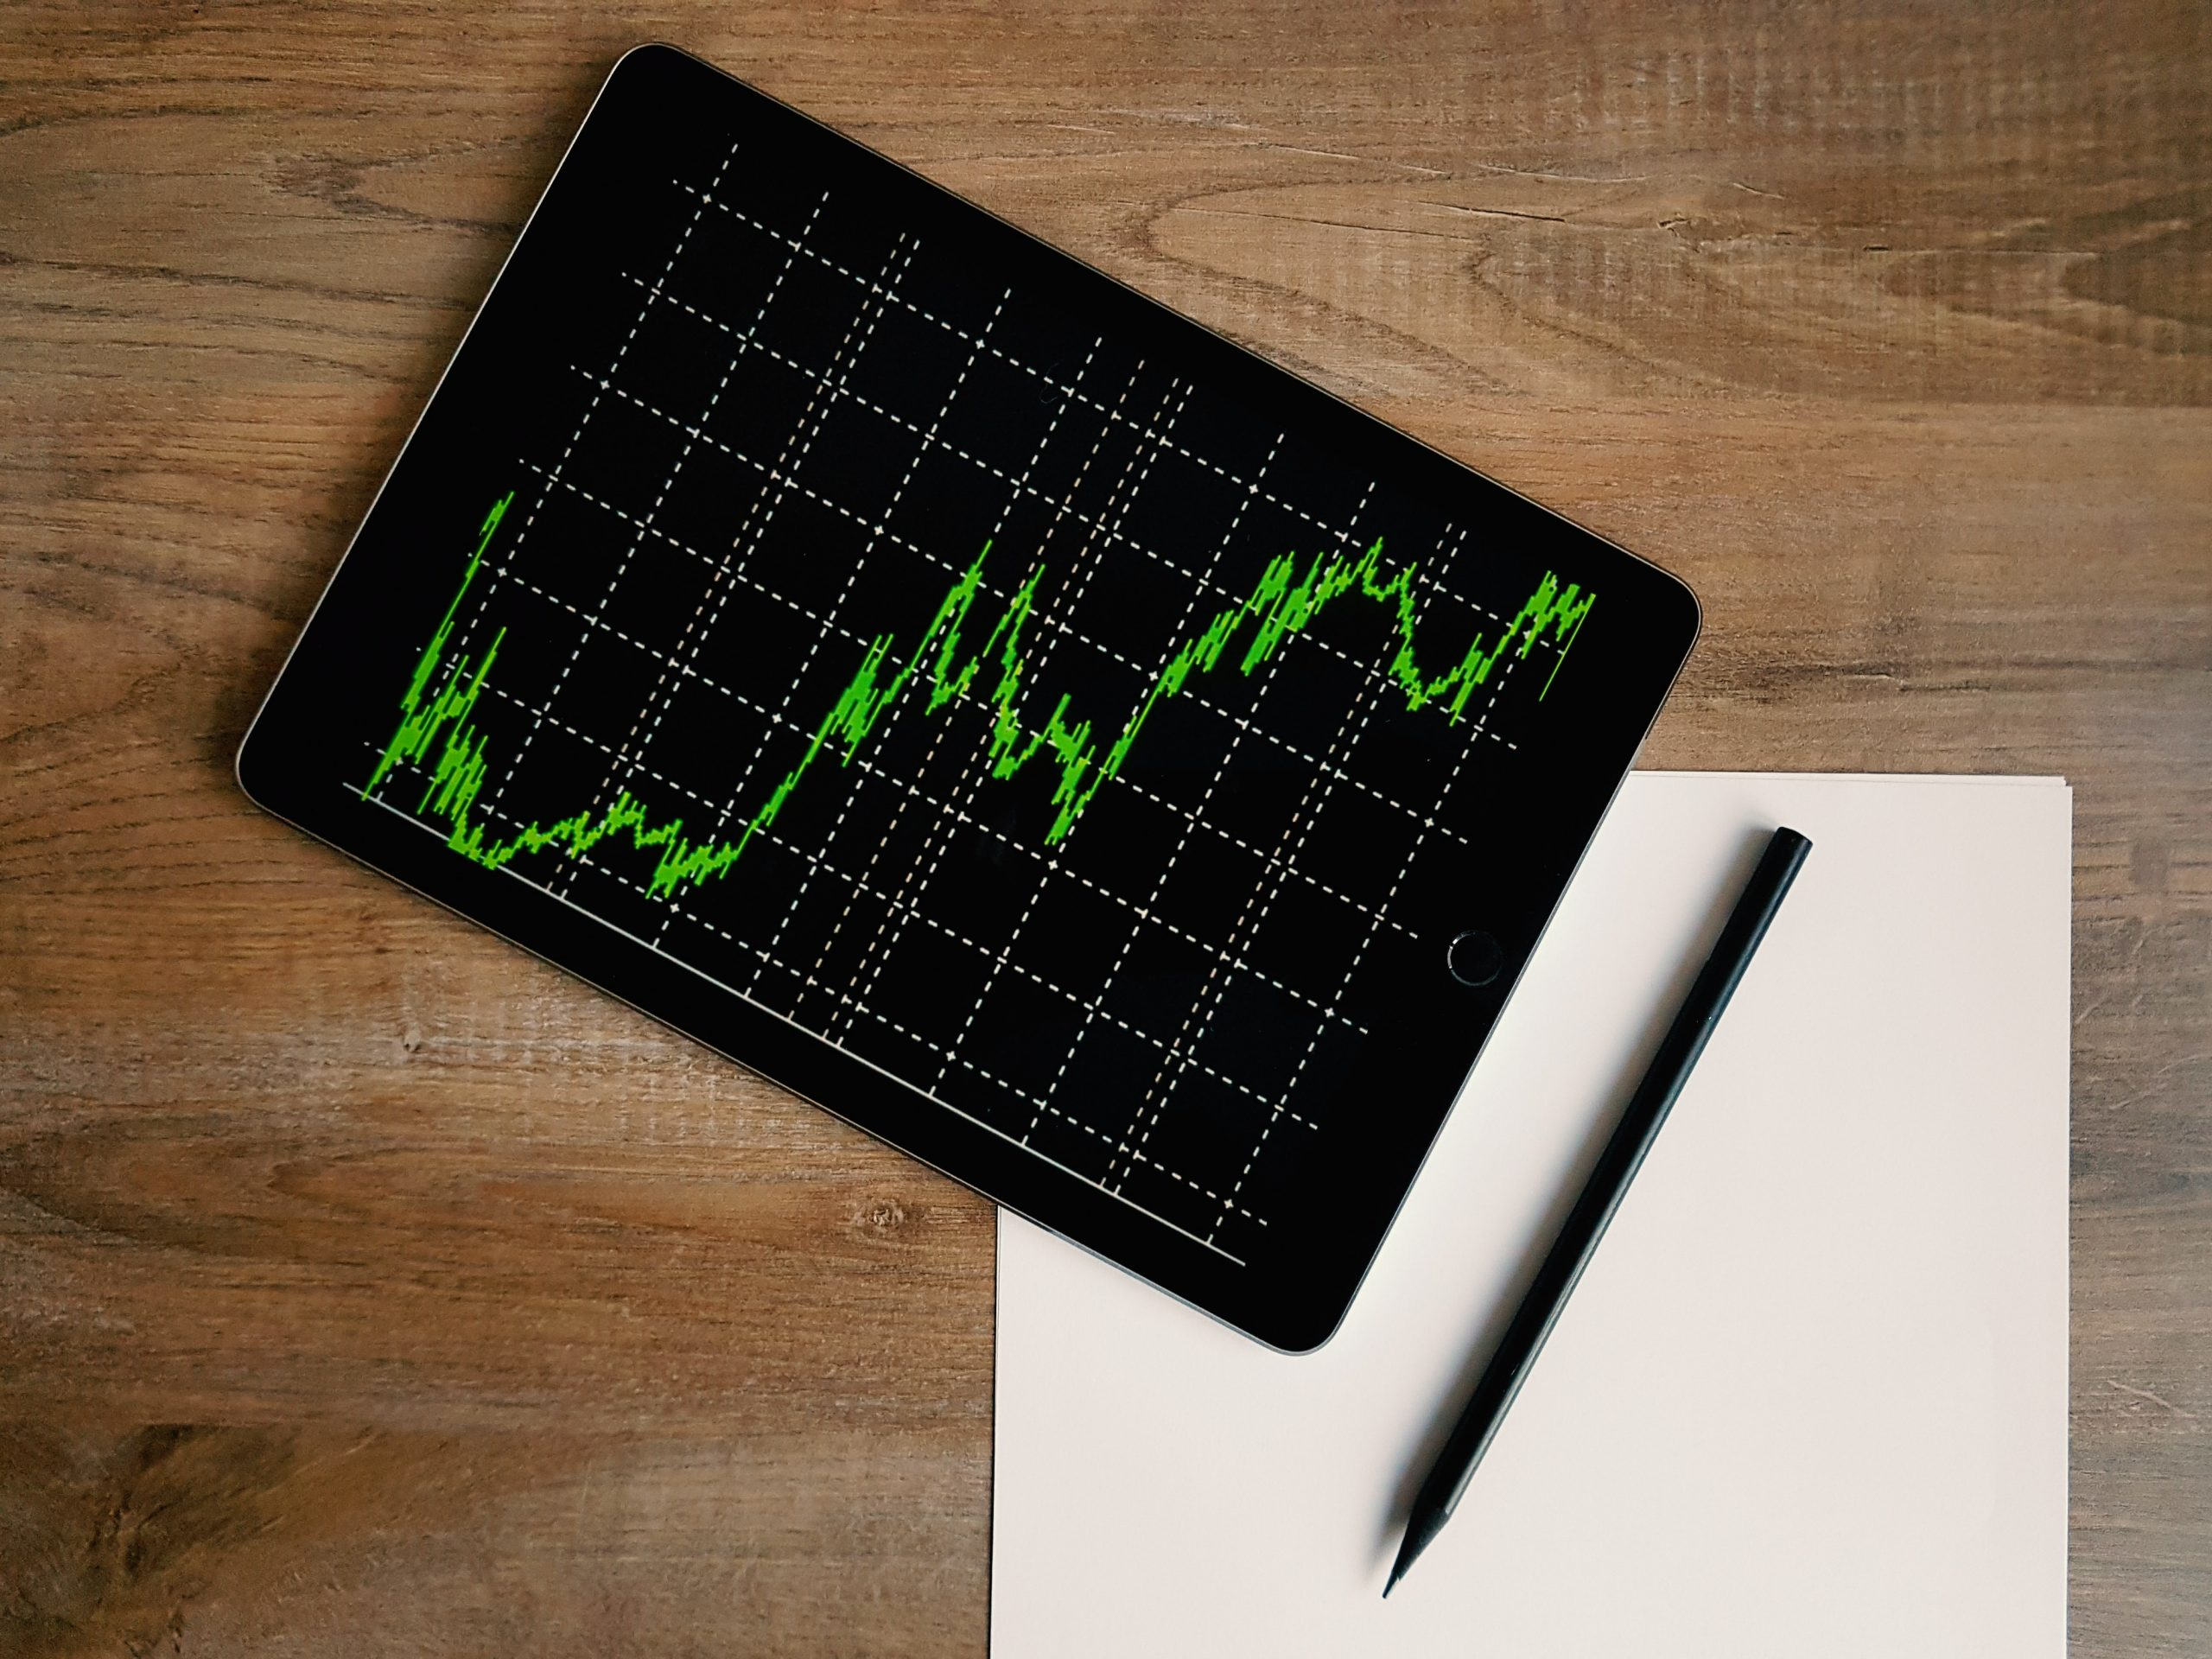 How Good Is Algo Trading?